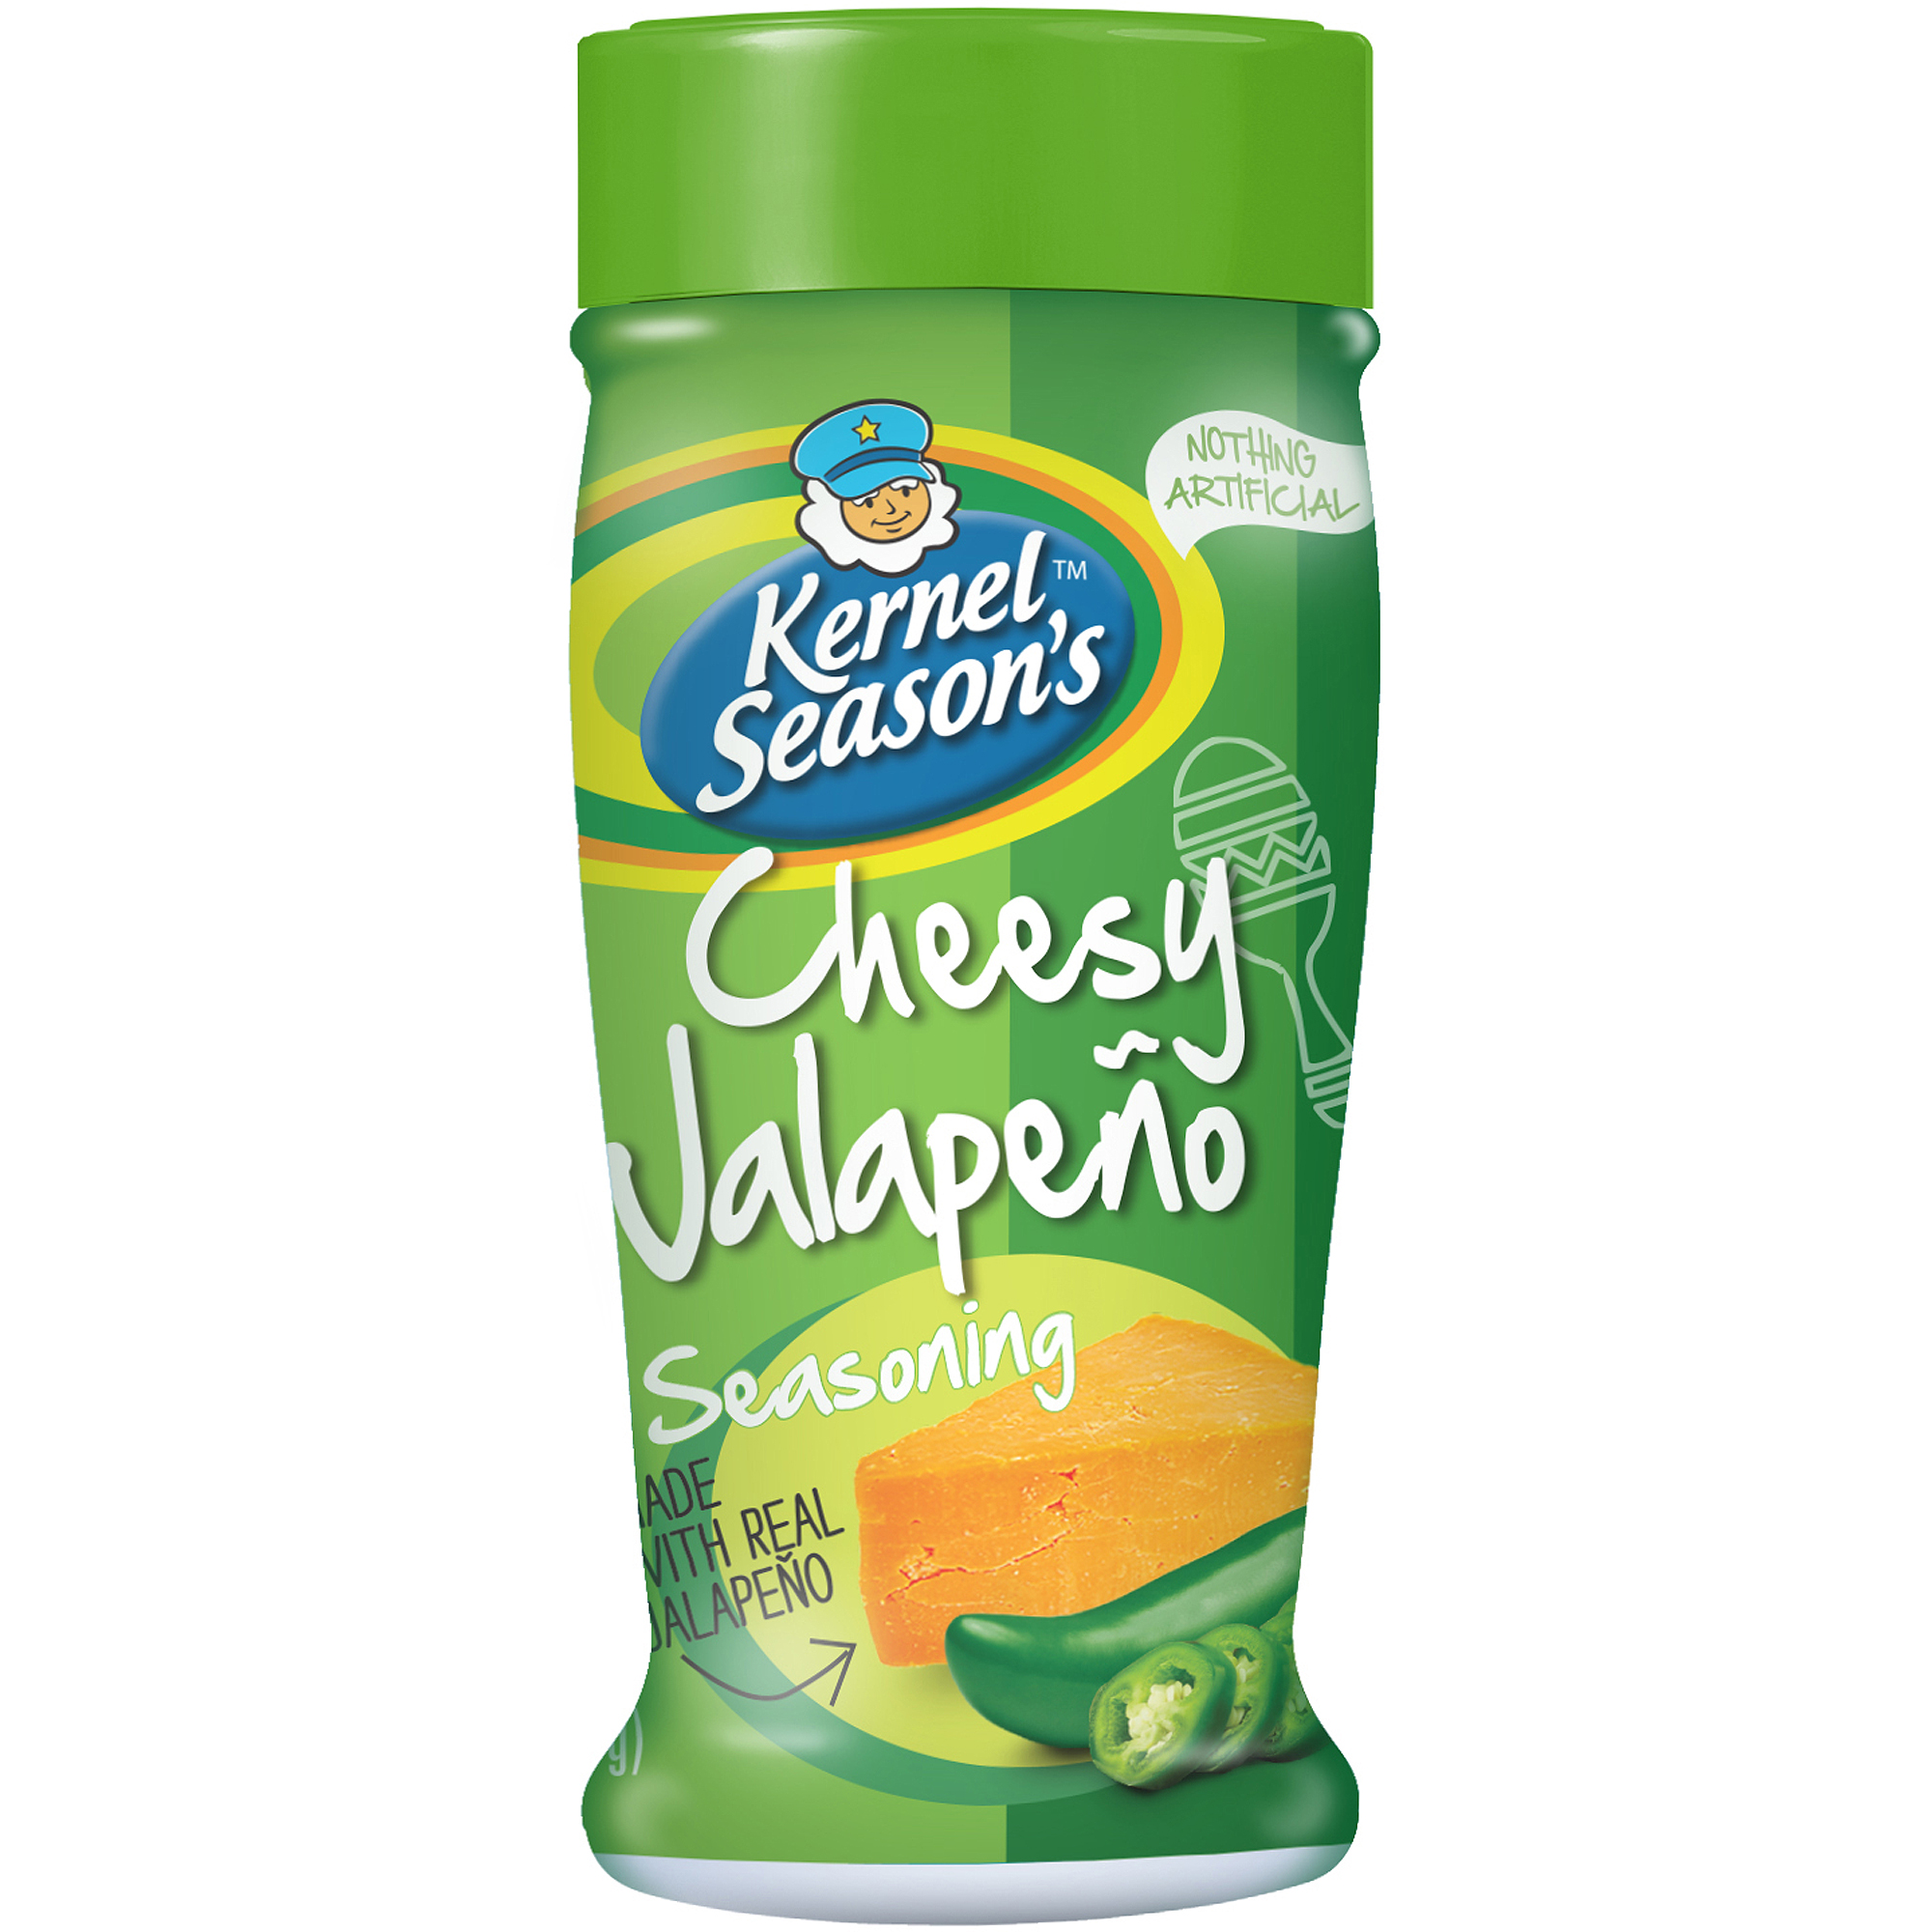 Kernel Season's Cheesy Jalapeno Seasoning, 2.4 oz